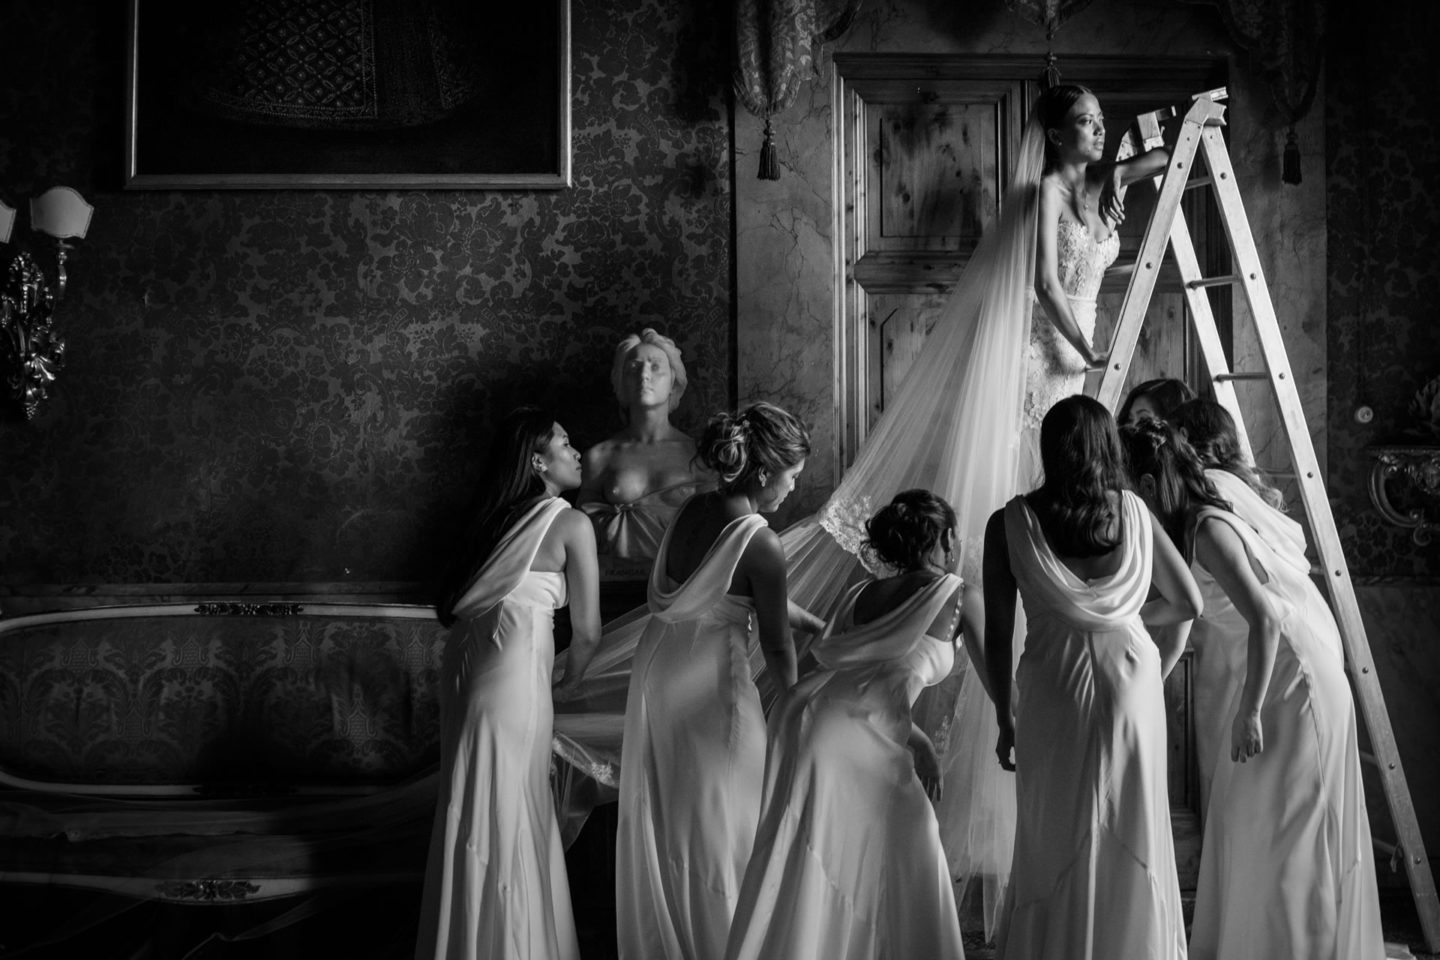 Veil :: Groups Bridal Parties :: David Bastianoni wedding photographer